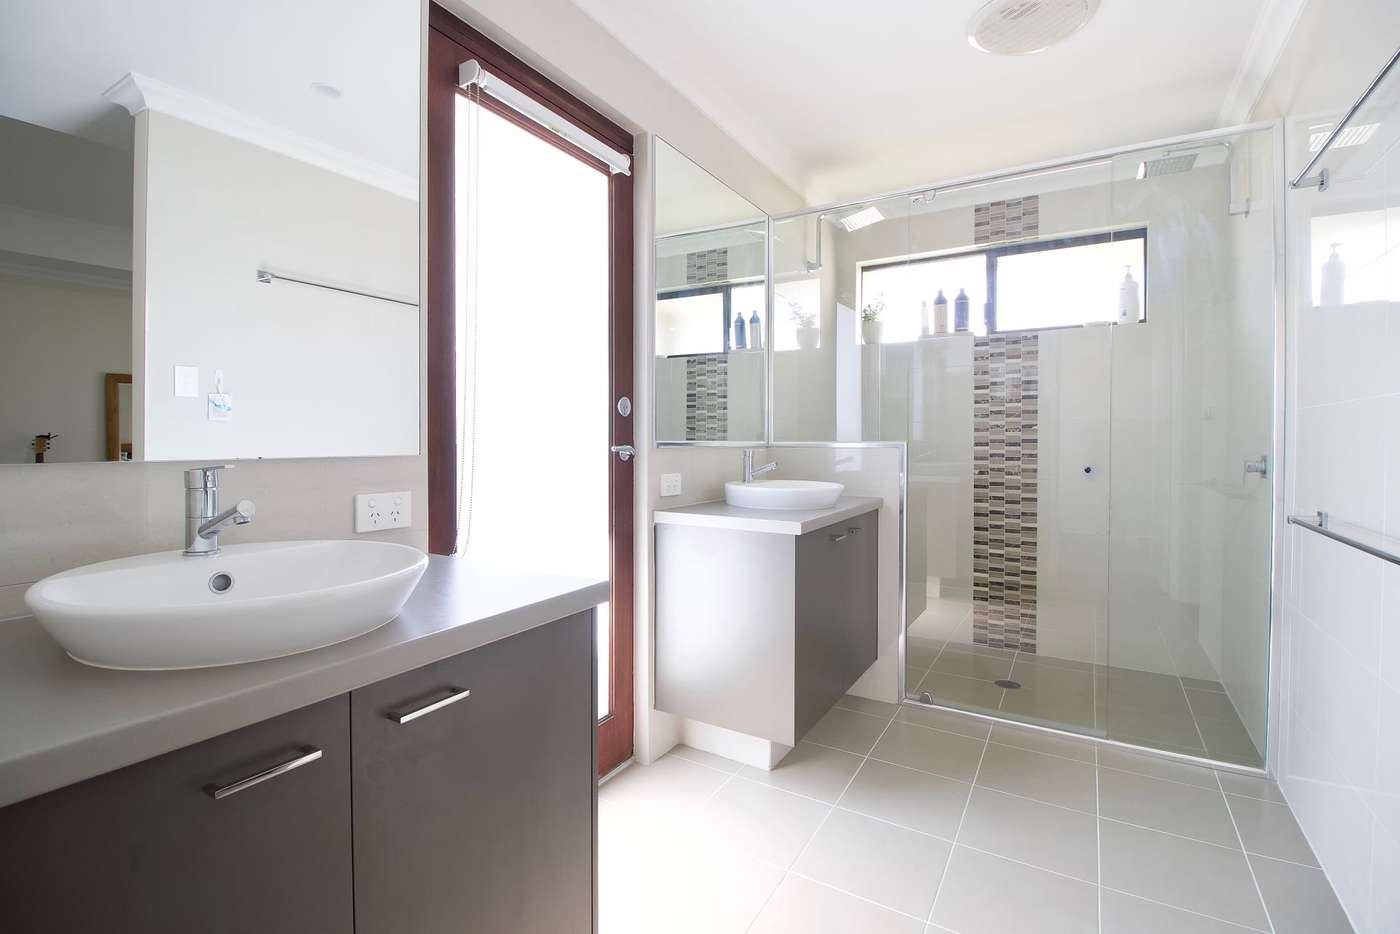 Seventh view of Homely house listing, 2 Whinhill Loop, Baldivis WA 6171